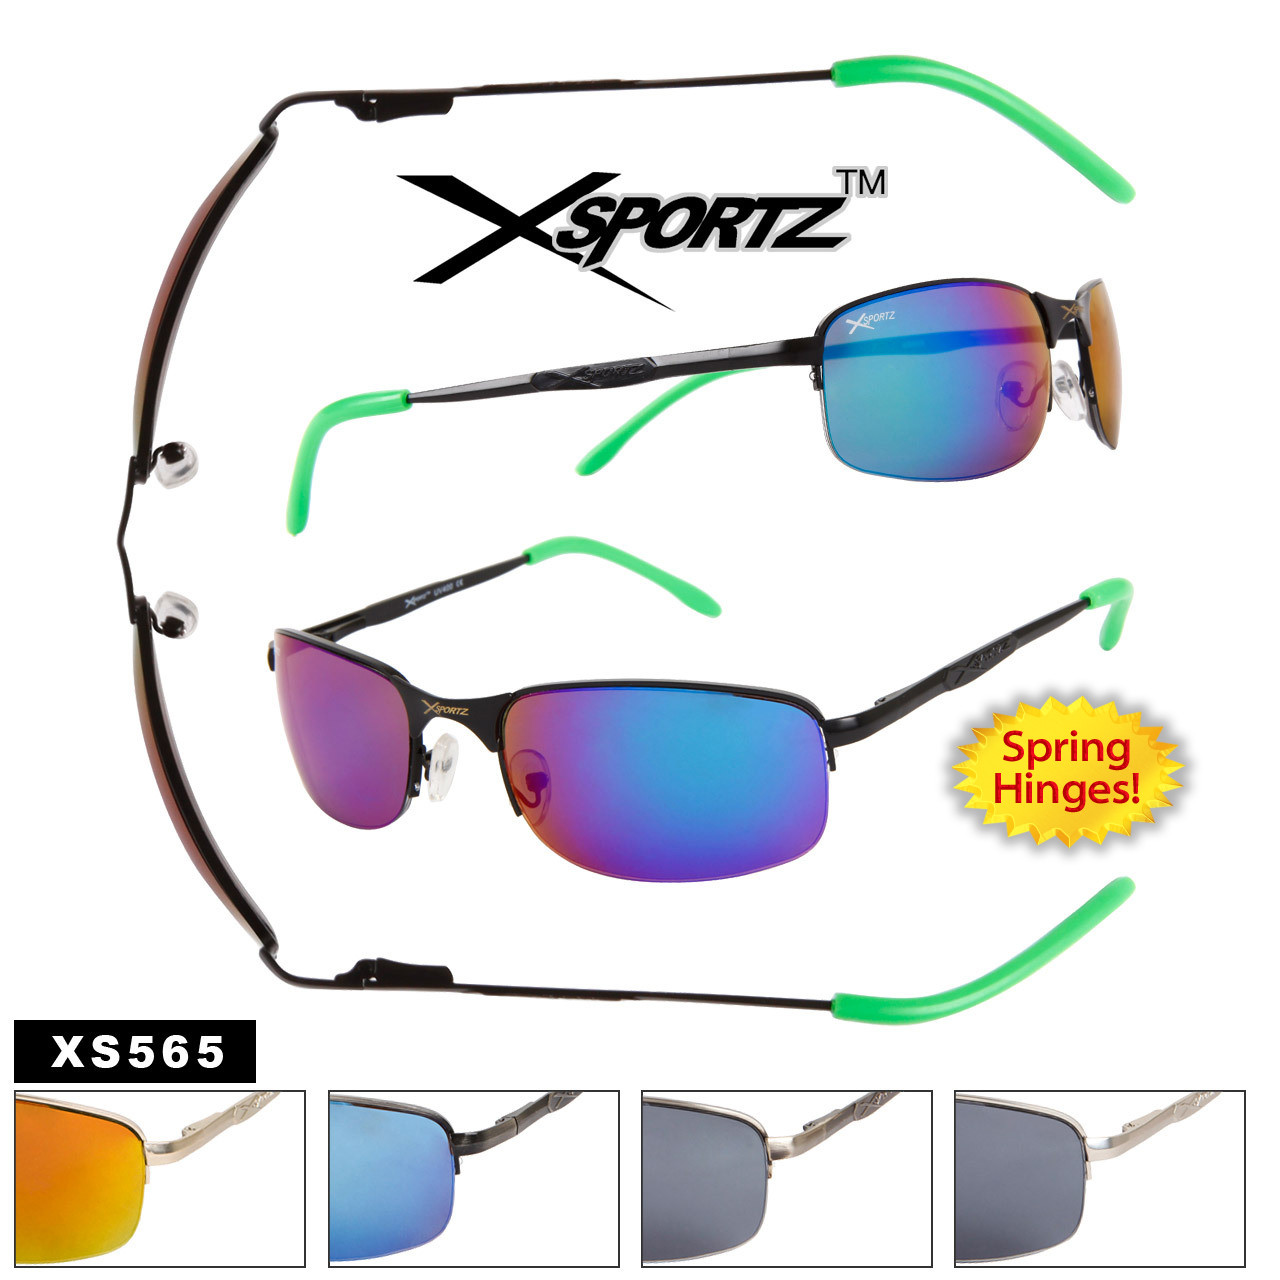 Xsportz™ Metal Frame Sports Sunglasses - Style # XS565